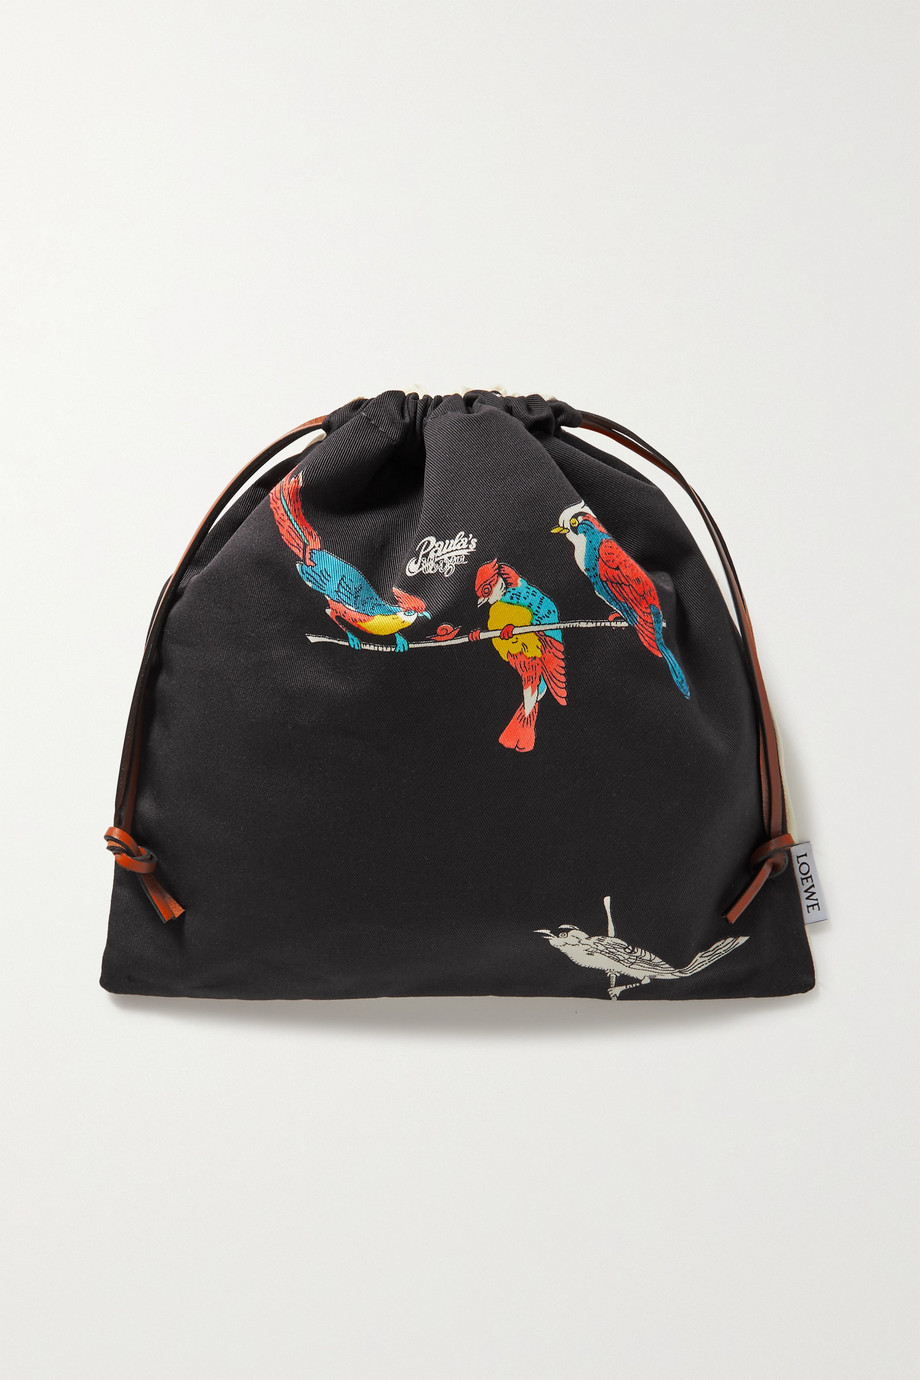 Loewe + Paula's Ibiza leather-trimmed printed cotton-canvas pouch